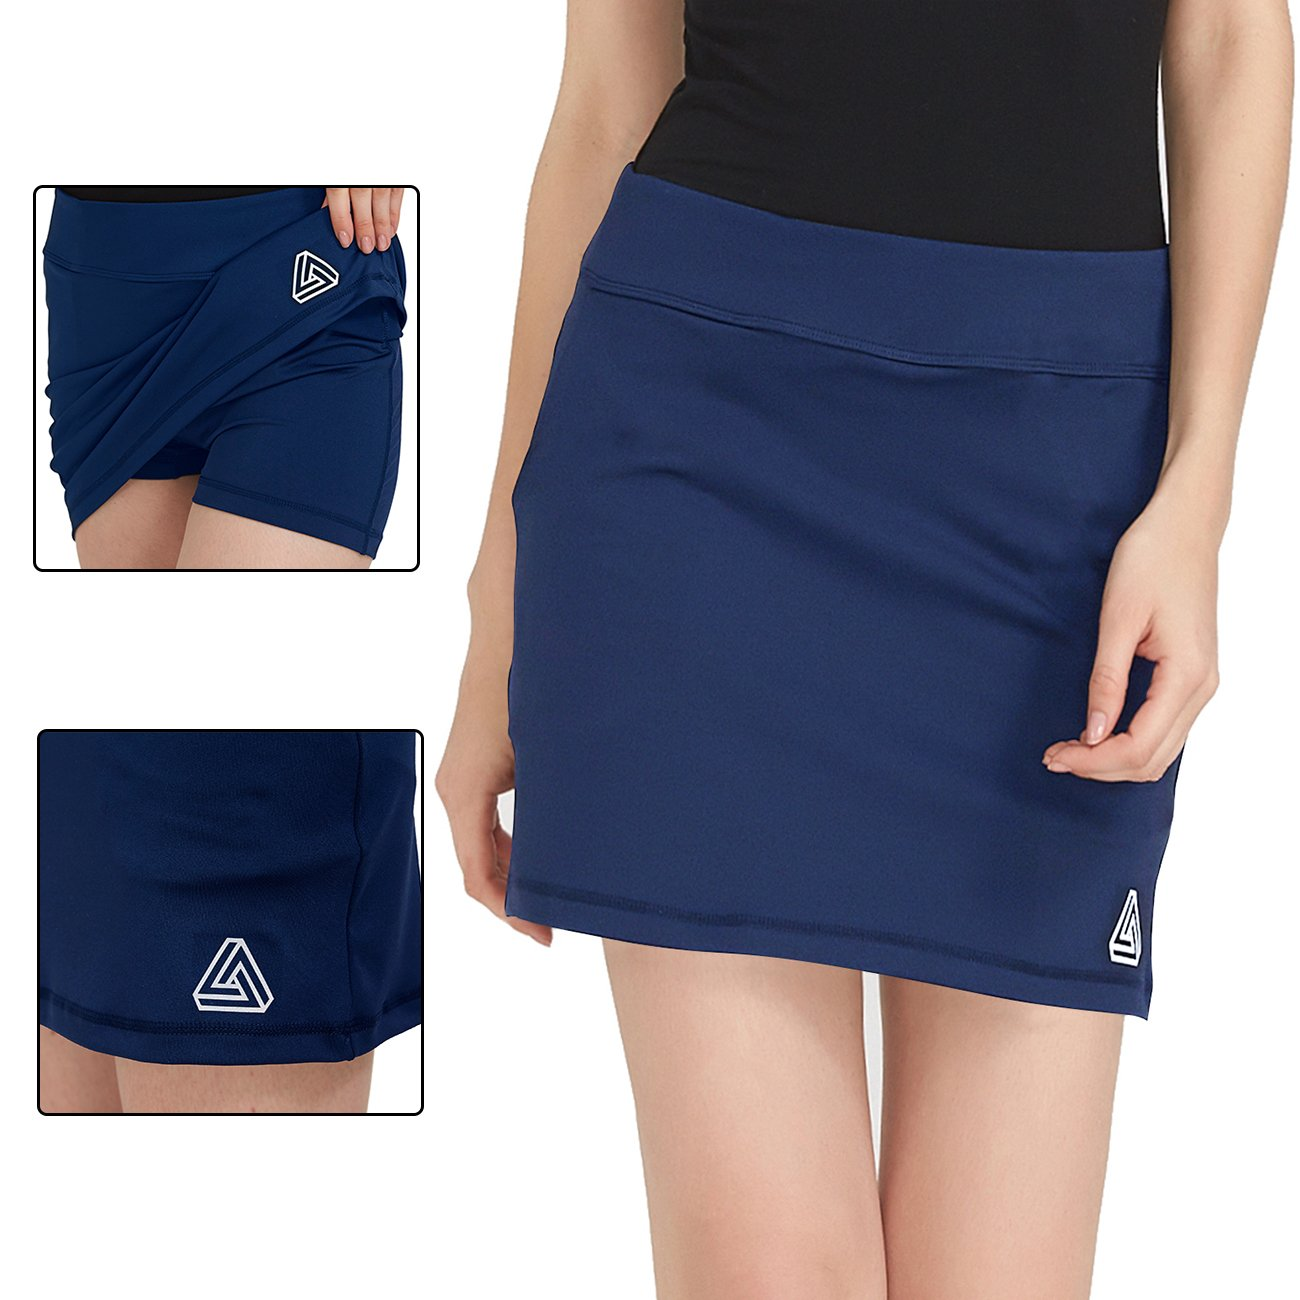 DOMICARE Women Active Athletic Skorts with Pockets - Lightweight Quick Dry Skirt with Short for Workout Sports, M, Navy